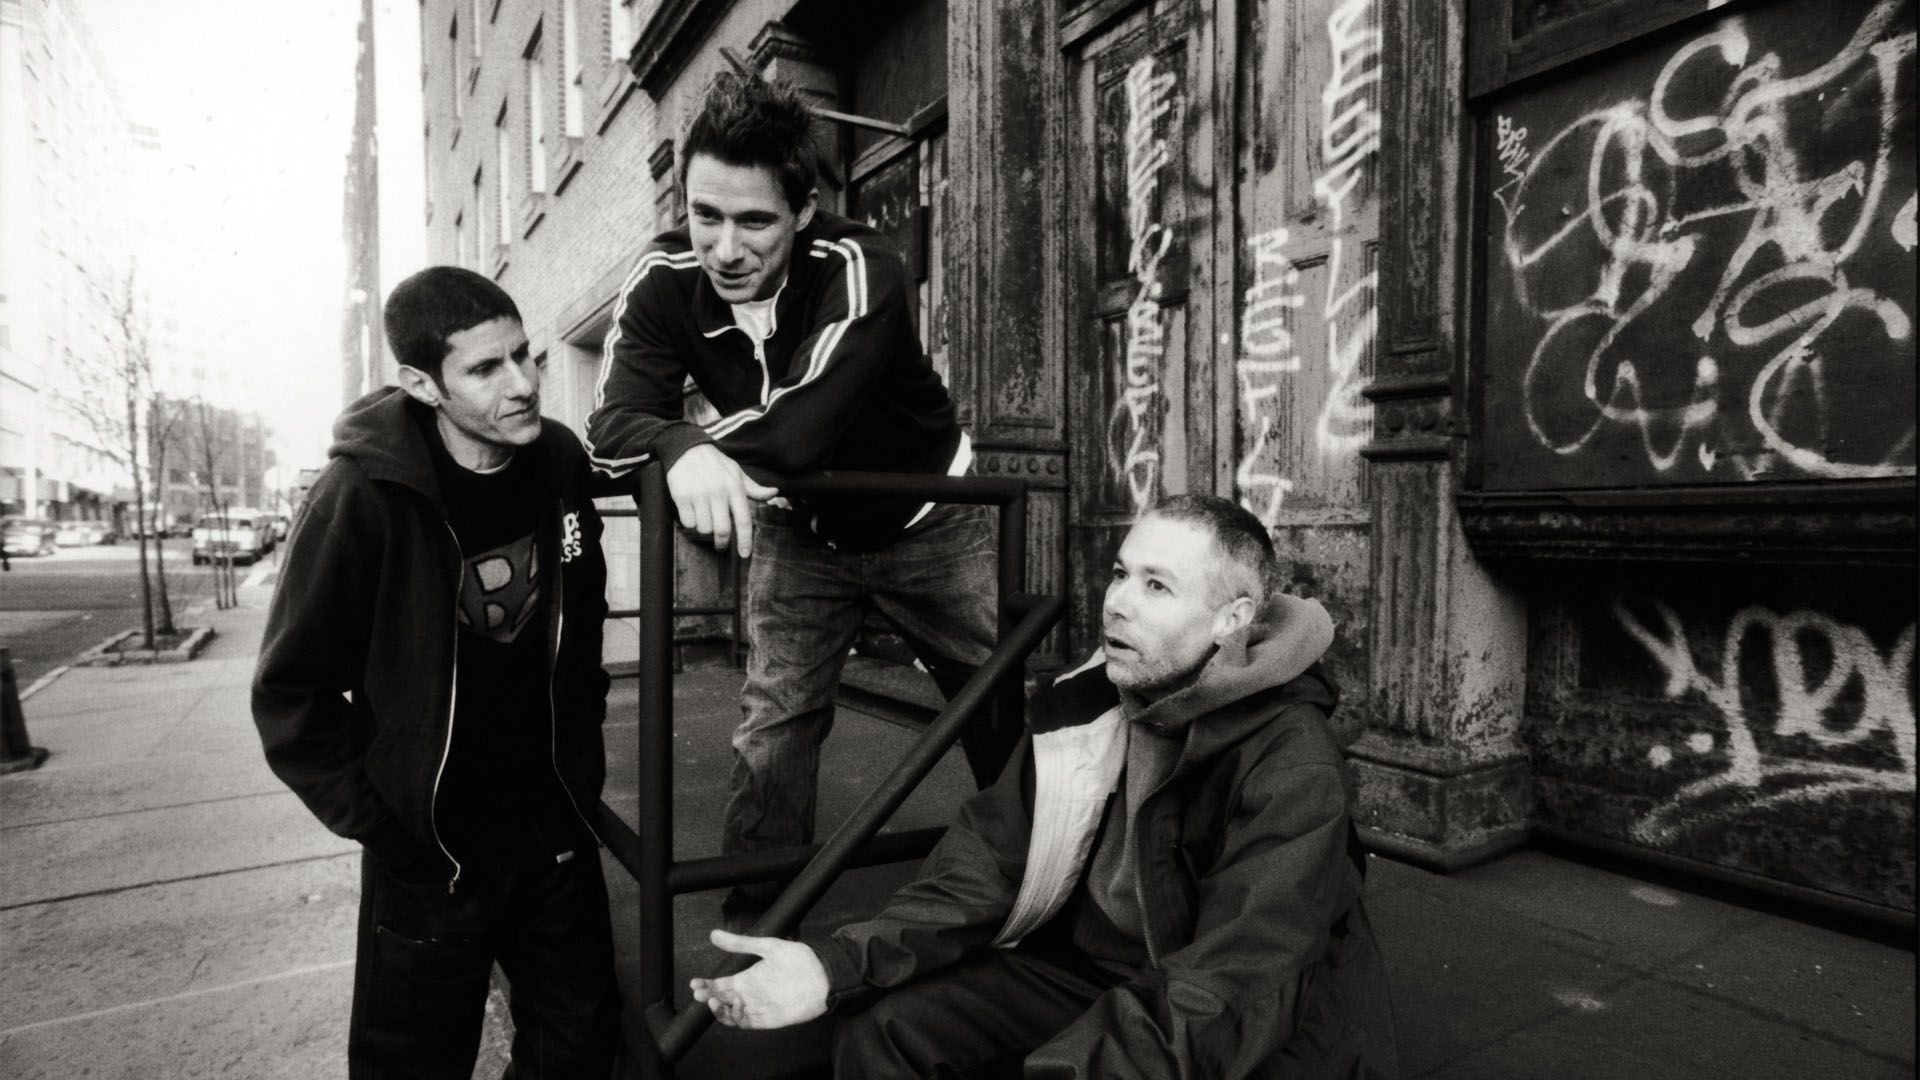 Fall Out Boy Wallpaper Laptop Beastie Boys Wallpapers Backgrounds